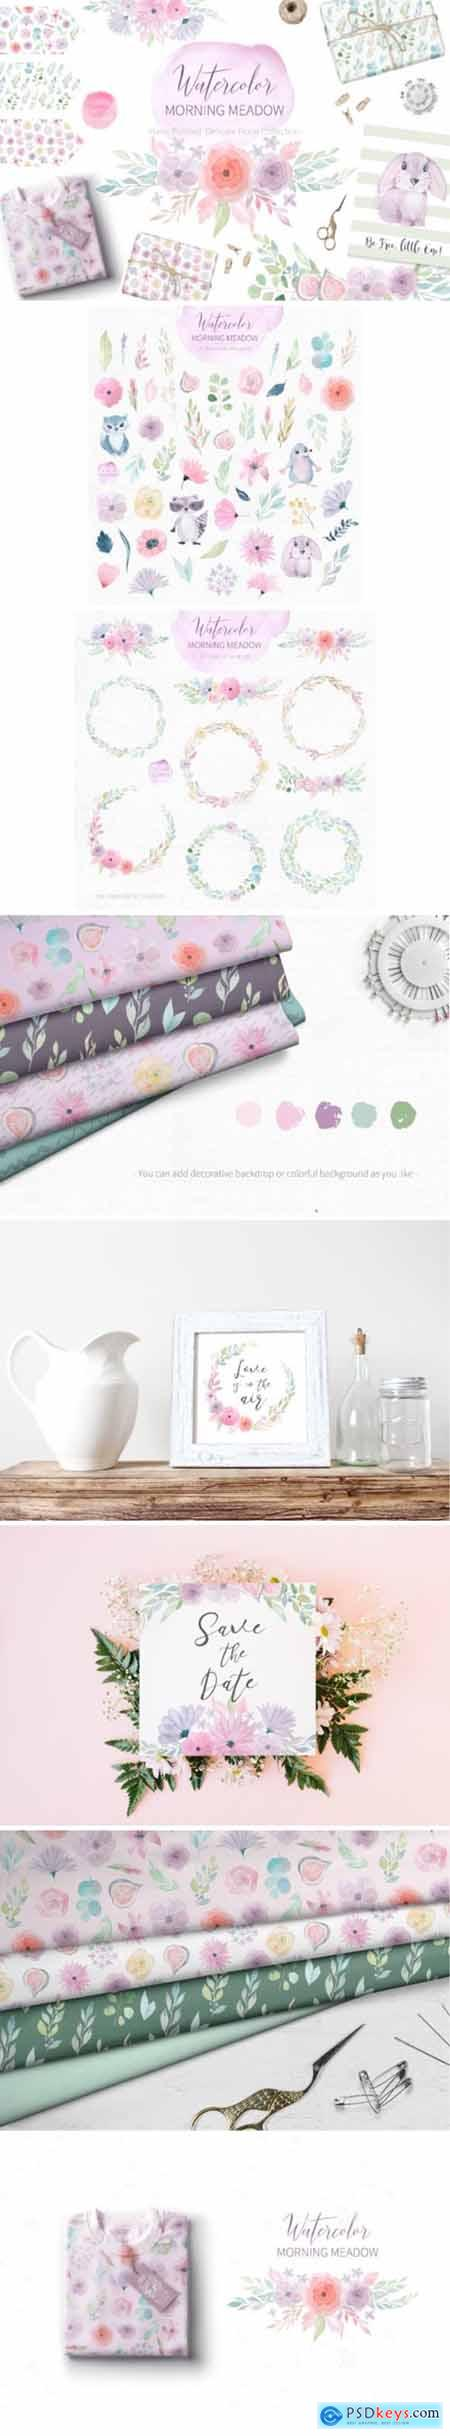 Watercolor Morning Meadow Floral Set 3515004